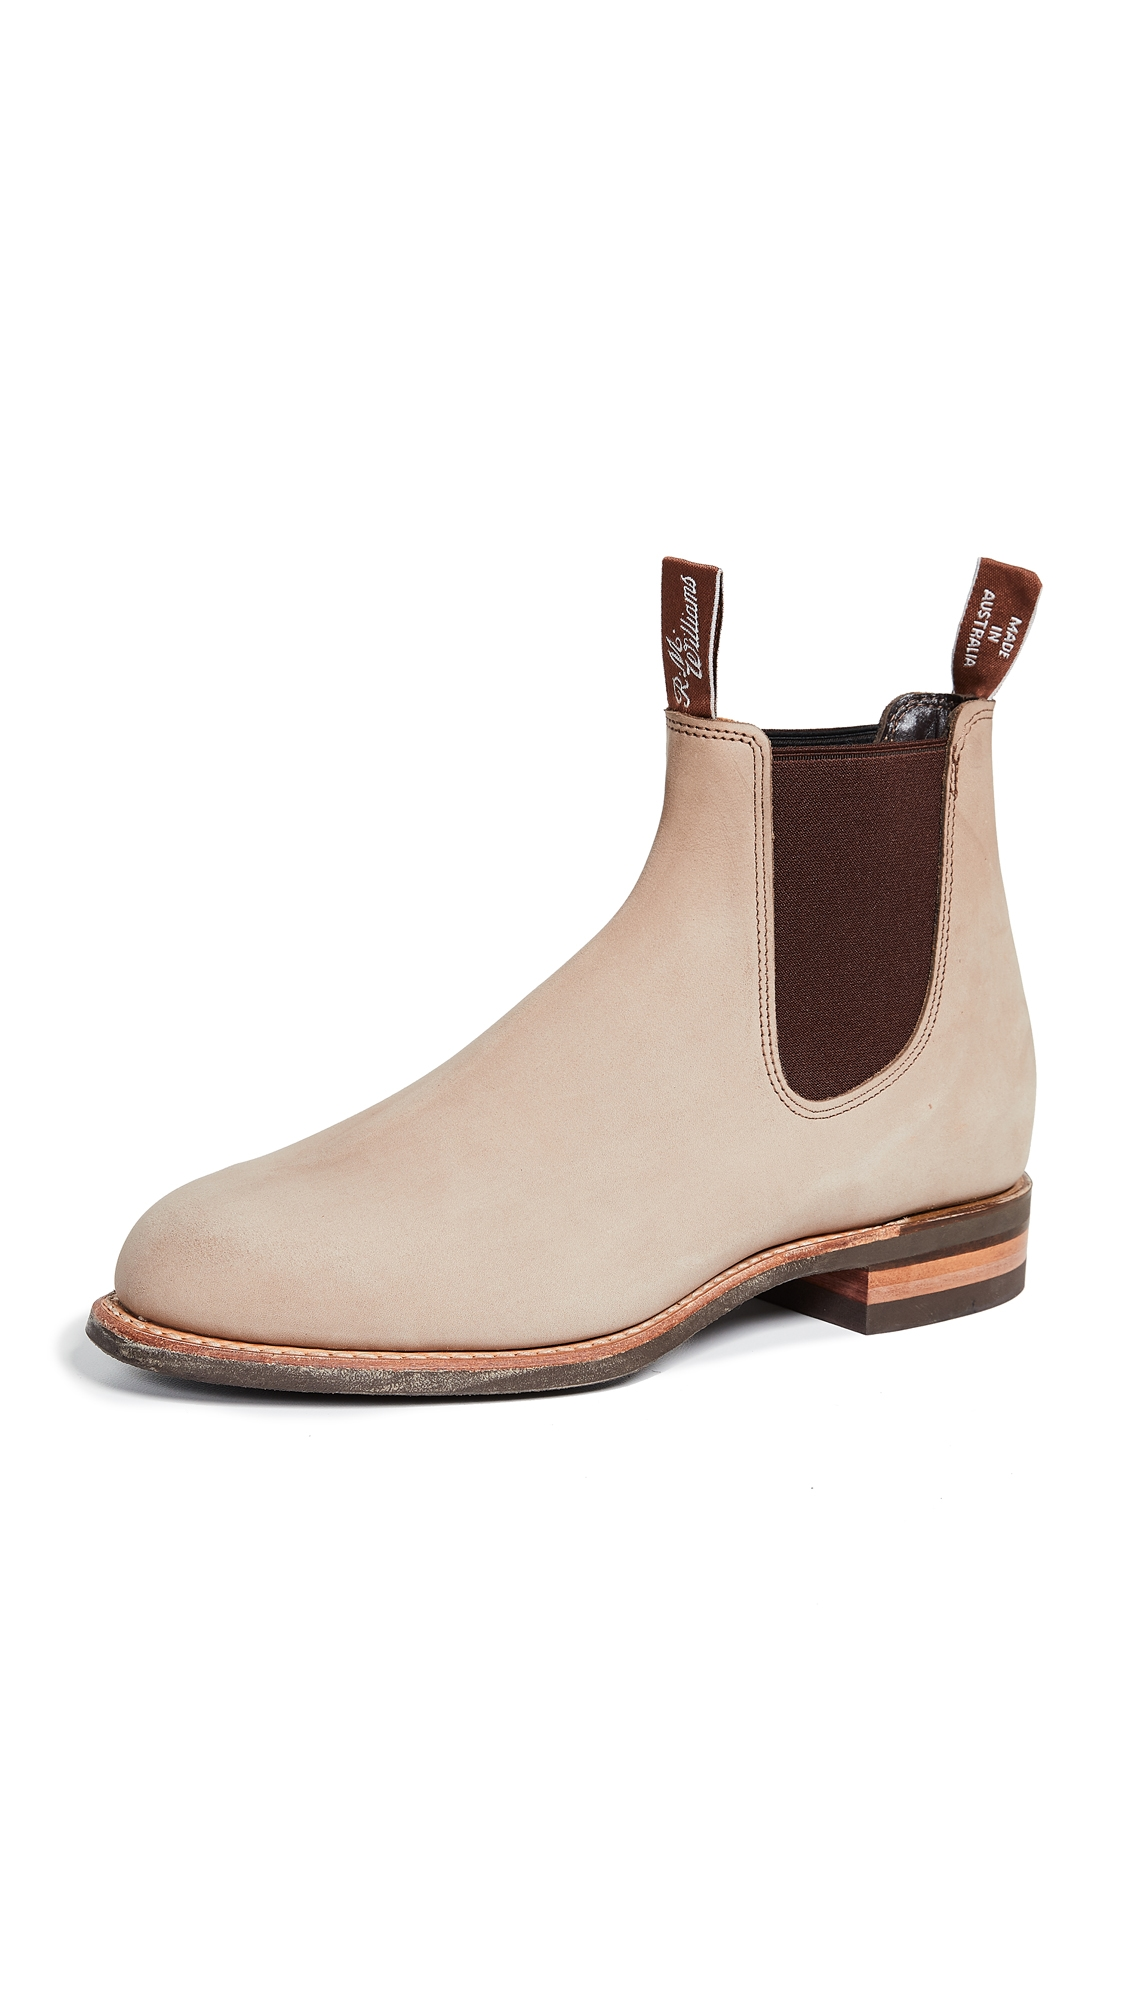 R.M.WILLIAMS R.M. Williams Beige Comfort Turnout Boots in Driftwood